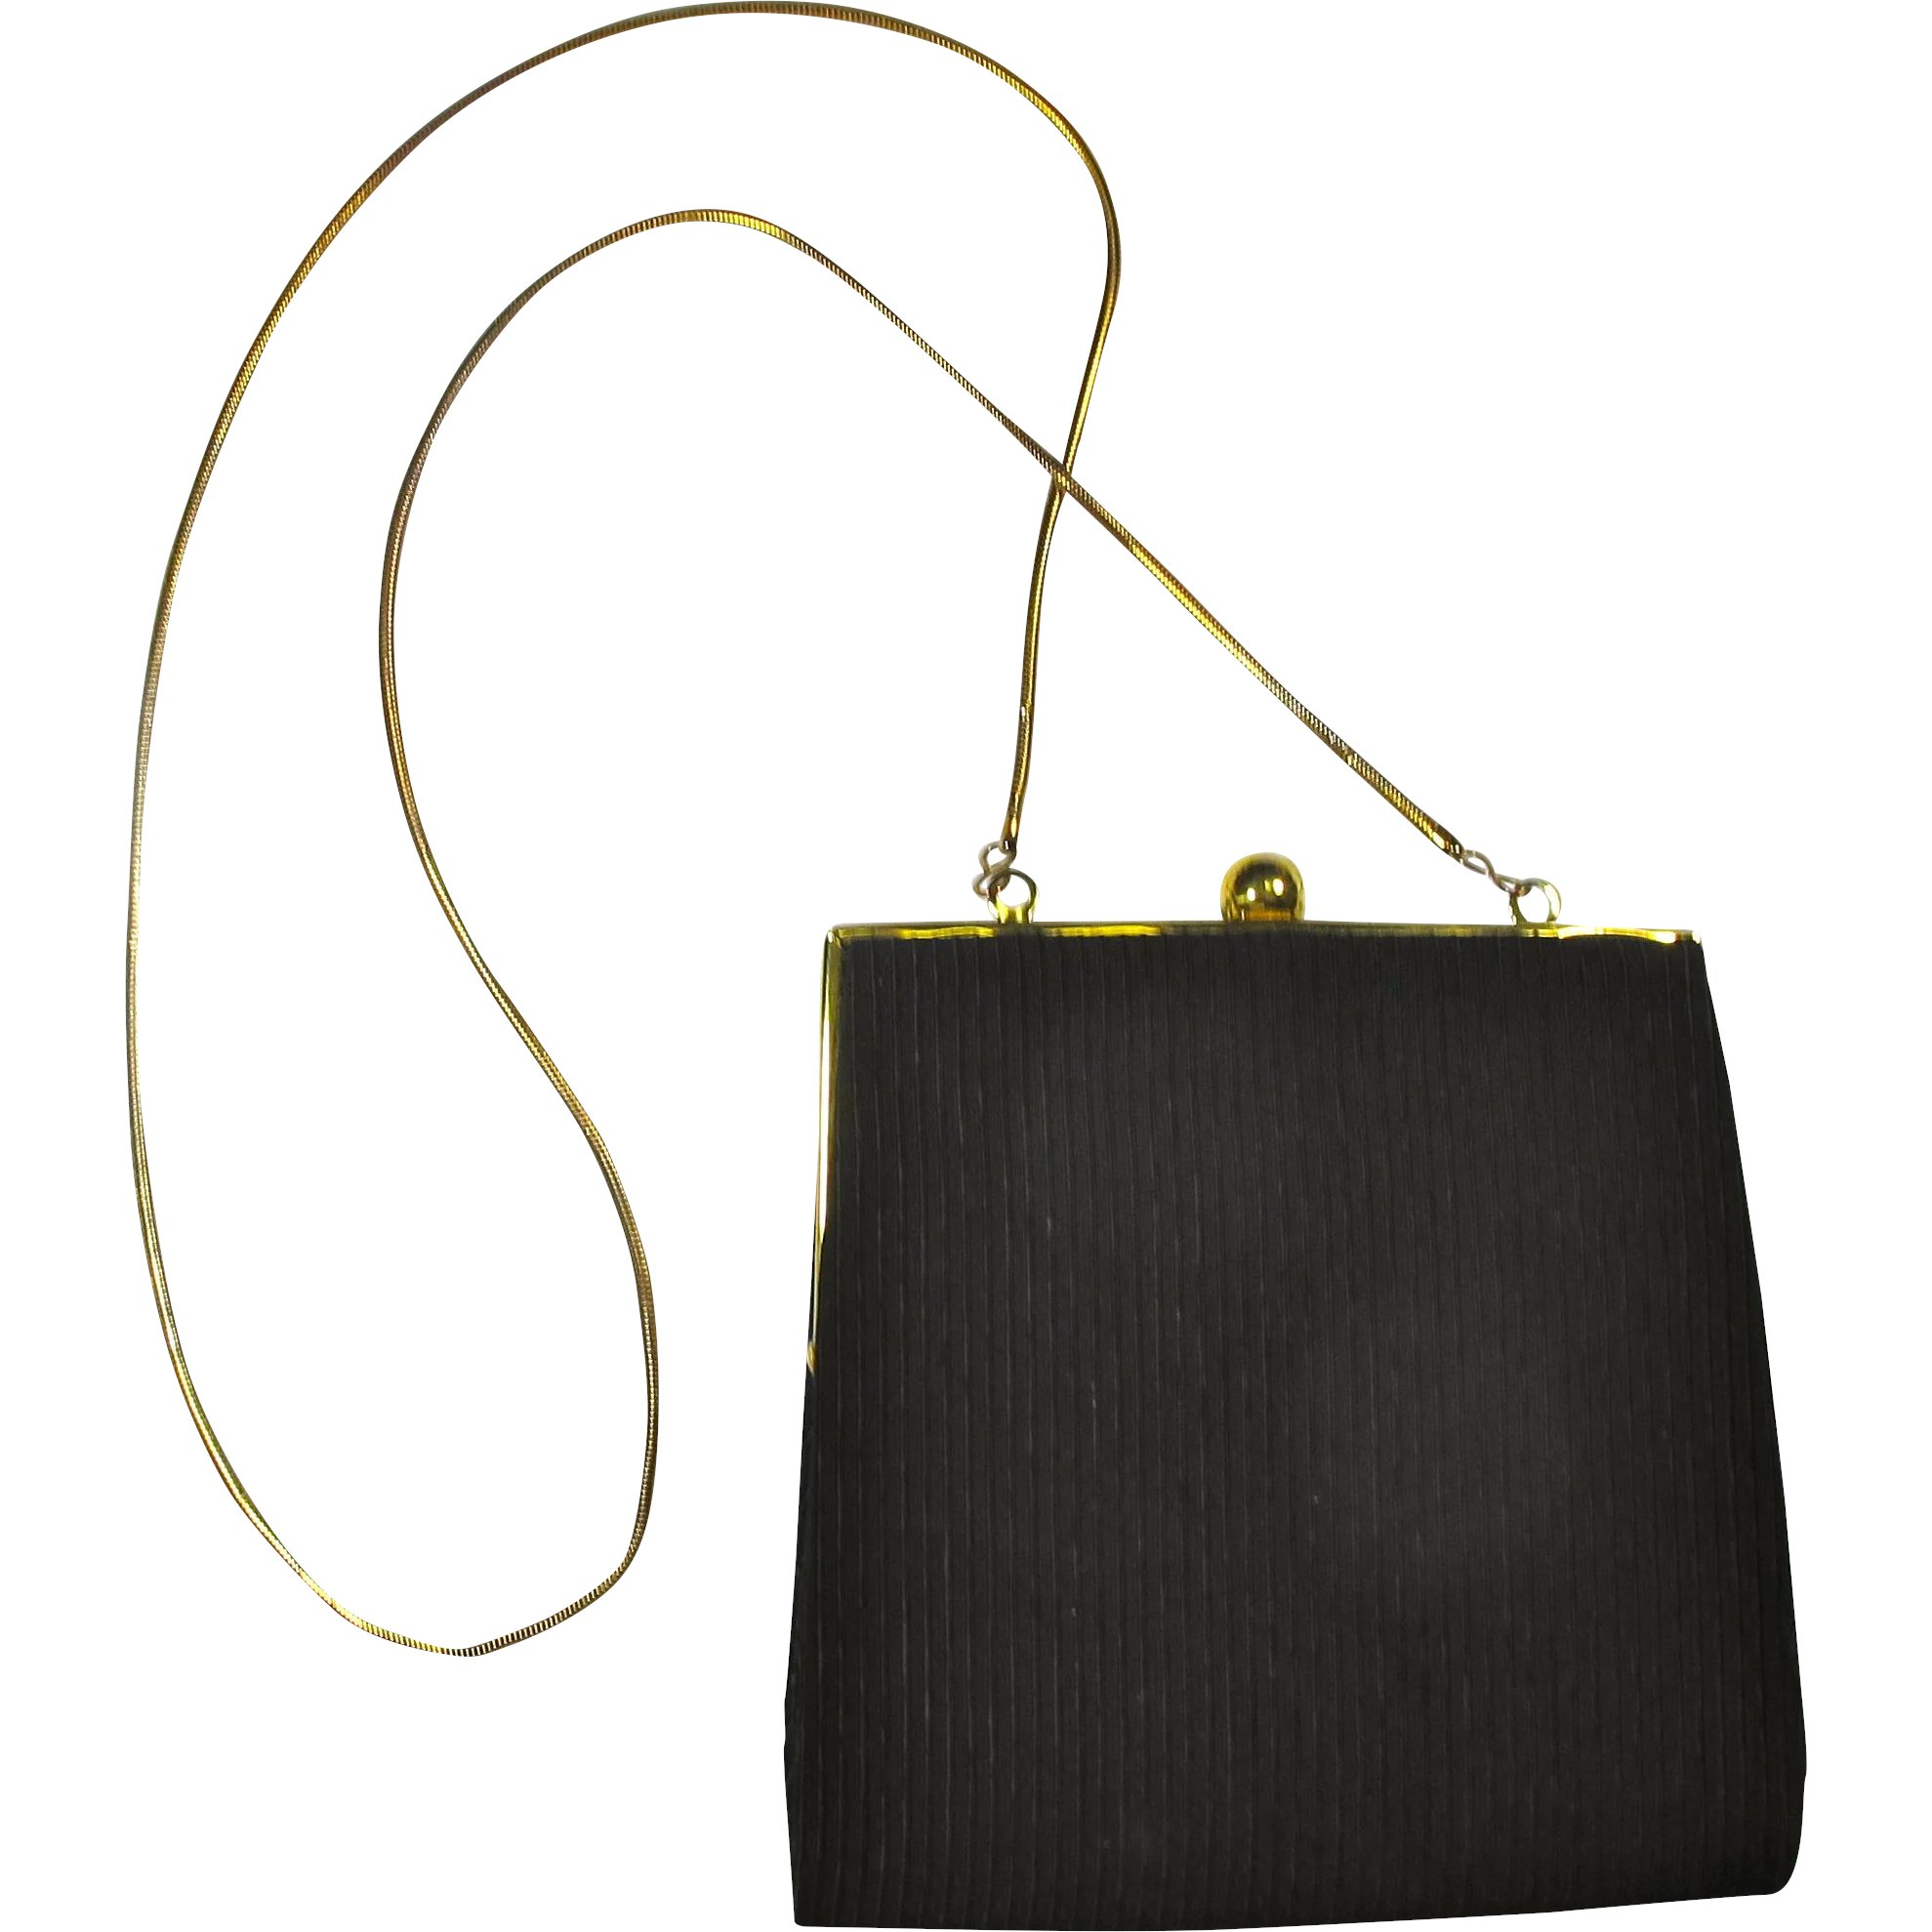 459ba072f6cd Vintage Black Clutch Purse With Gold Chain Strap   PZBaubles New Orleans